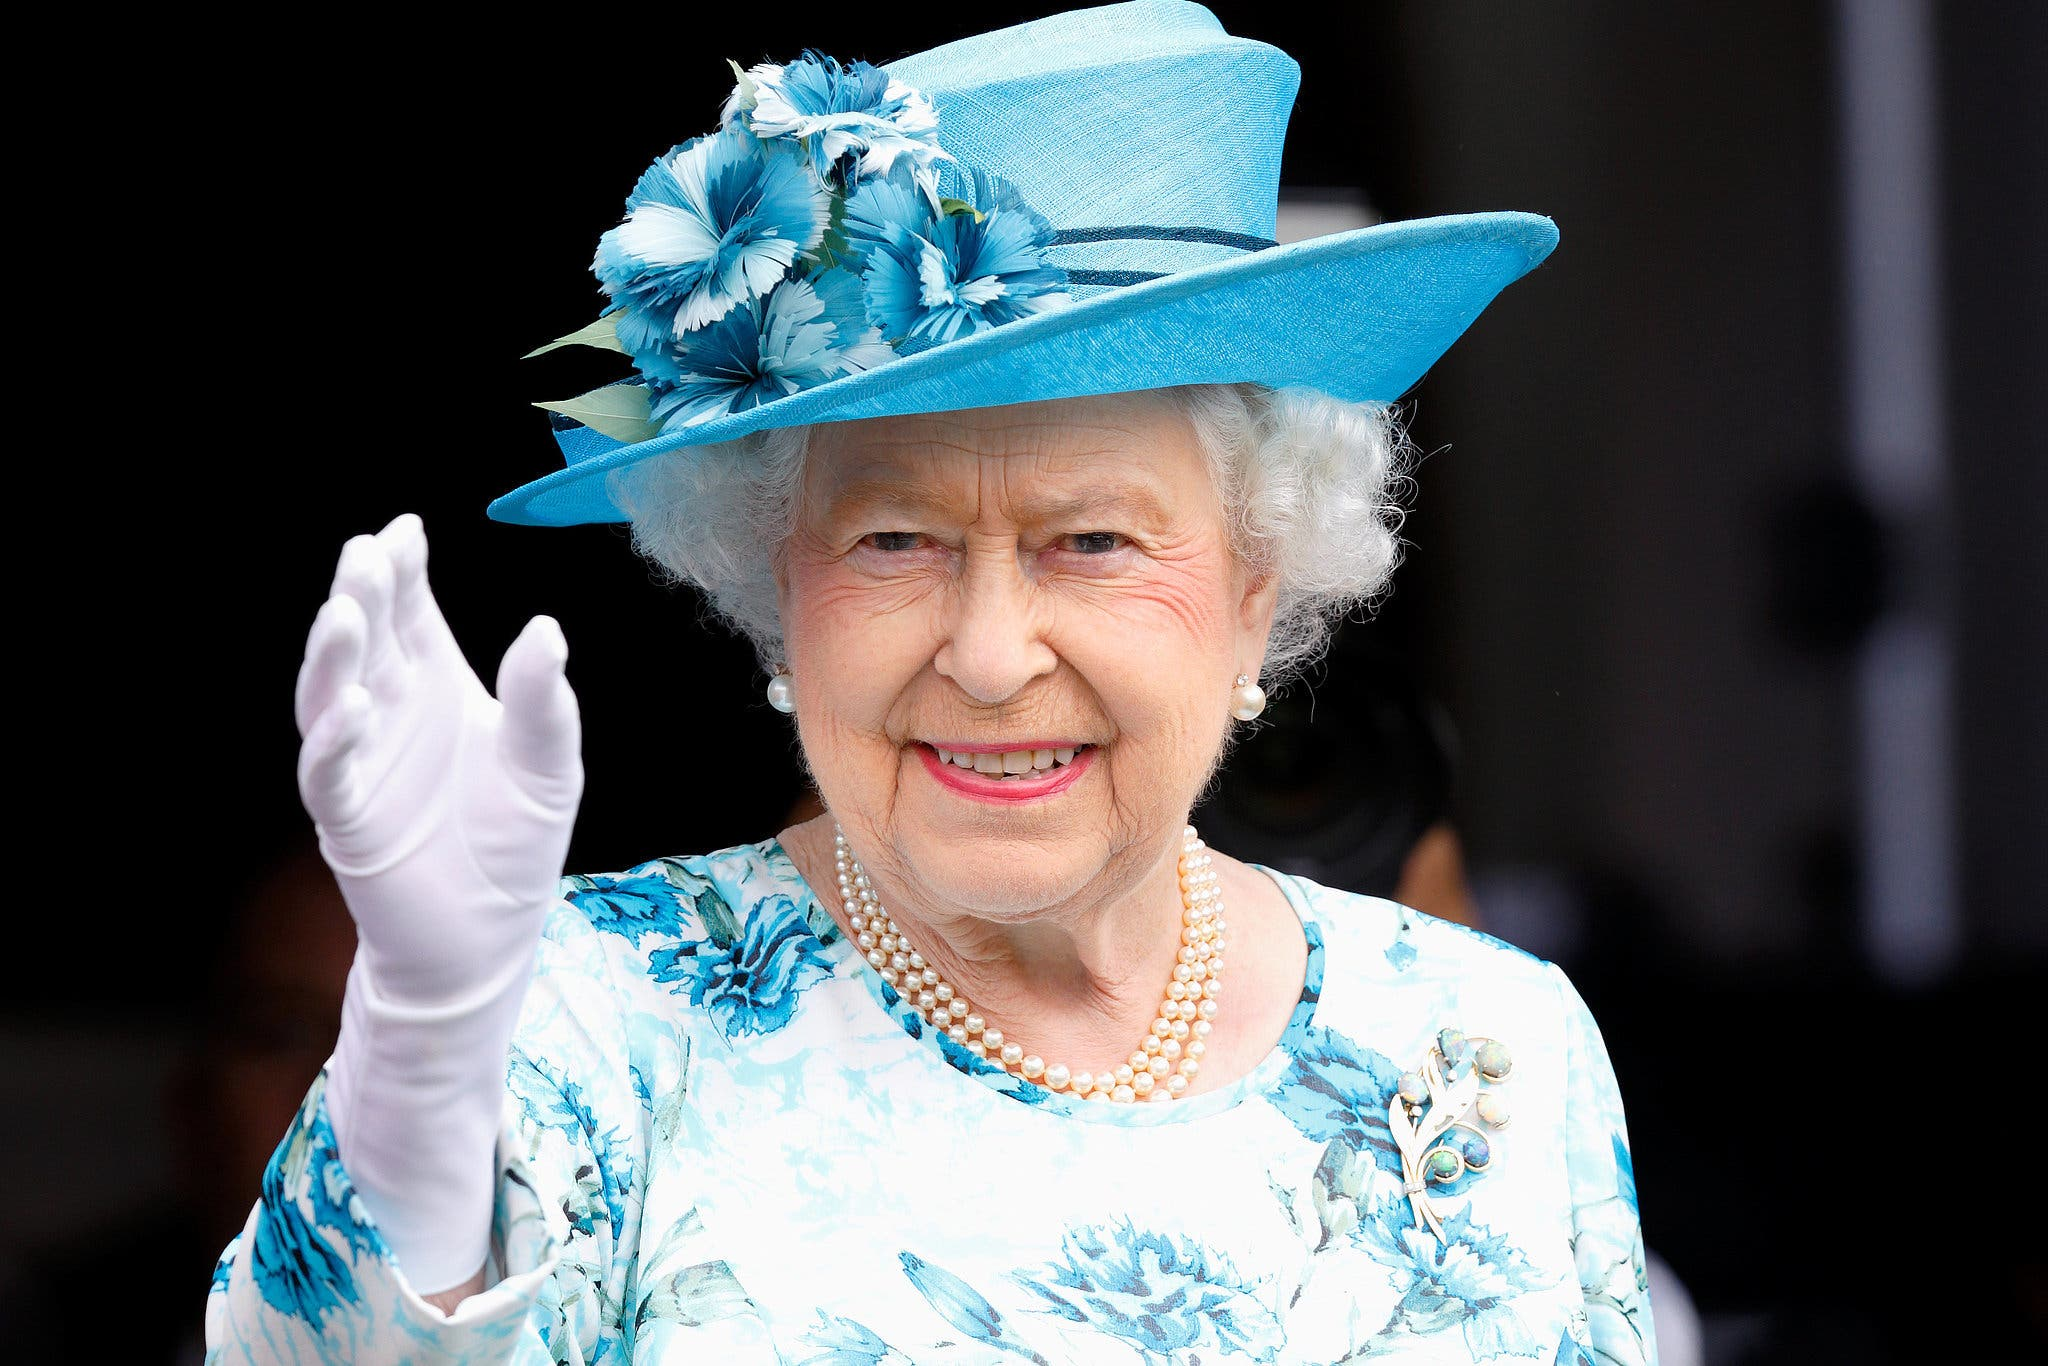 Queen Elizabeth is Looking for a Social Media Manager... and Will Pay P3 Million a Year